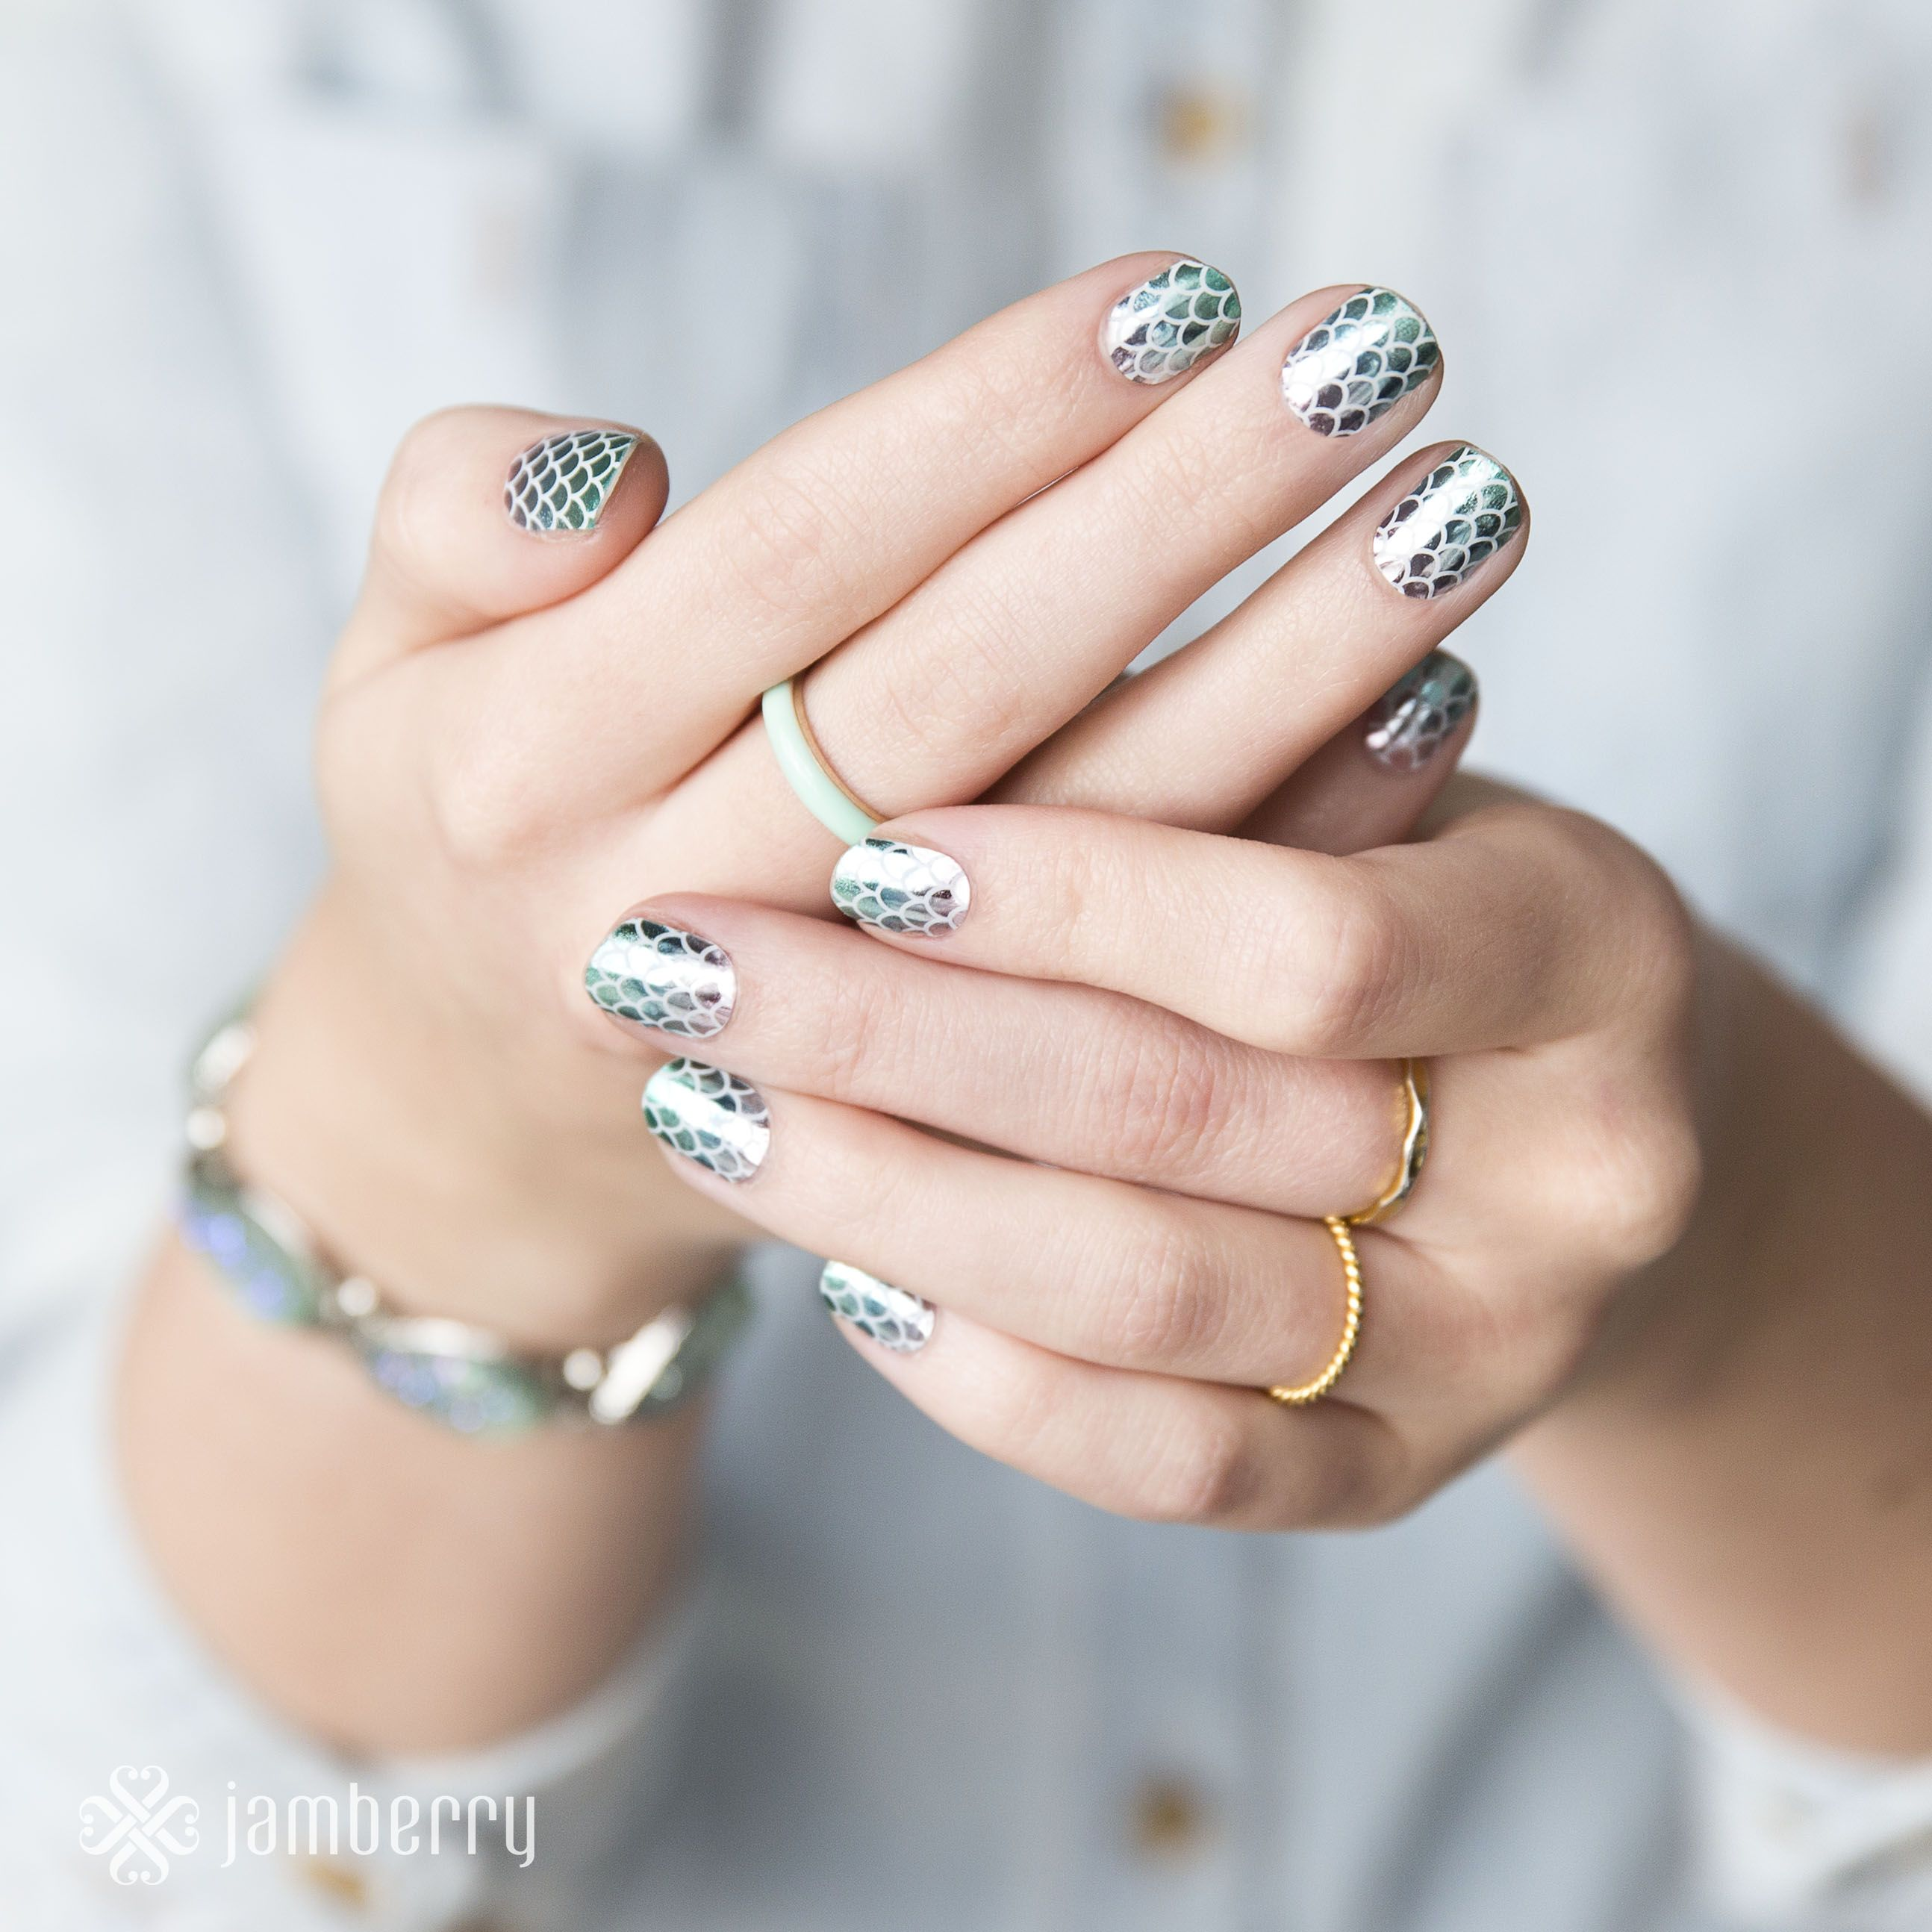 One of my personal favourites - these apply yourself at home nail wraps (with a hairdryer!) are metallic shiny mermaid scales - so beautiful! Design - Mermaid Tales